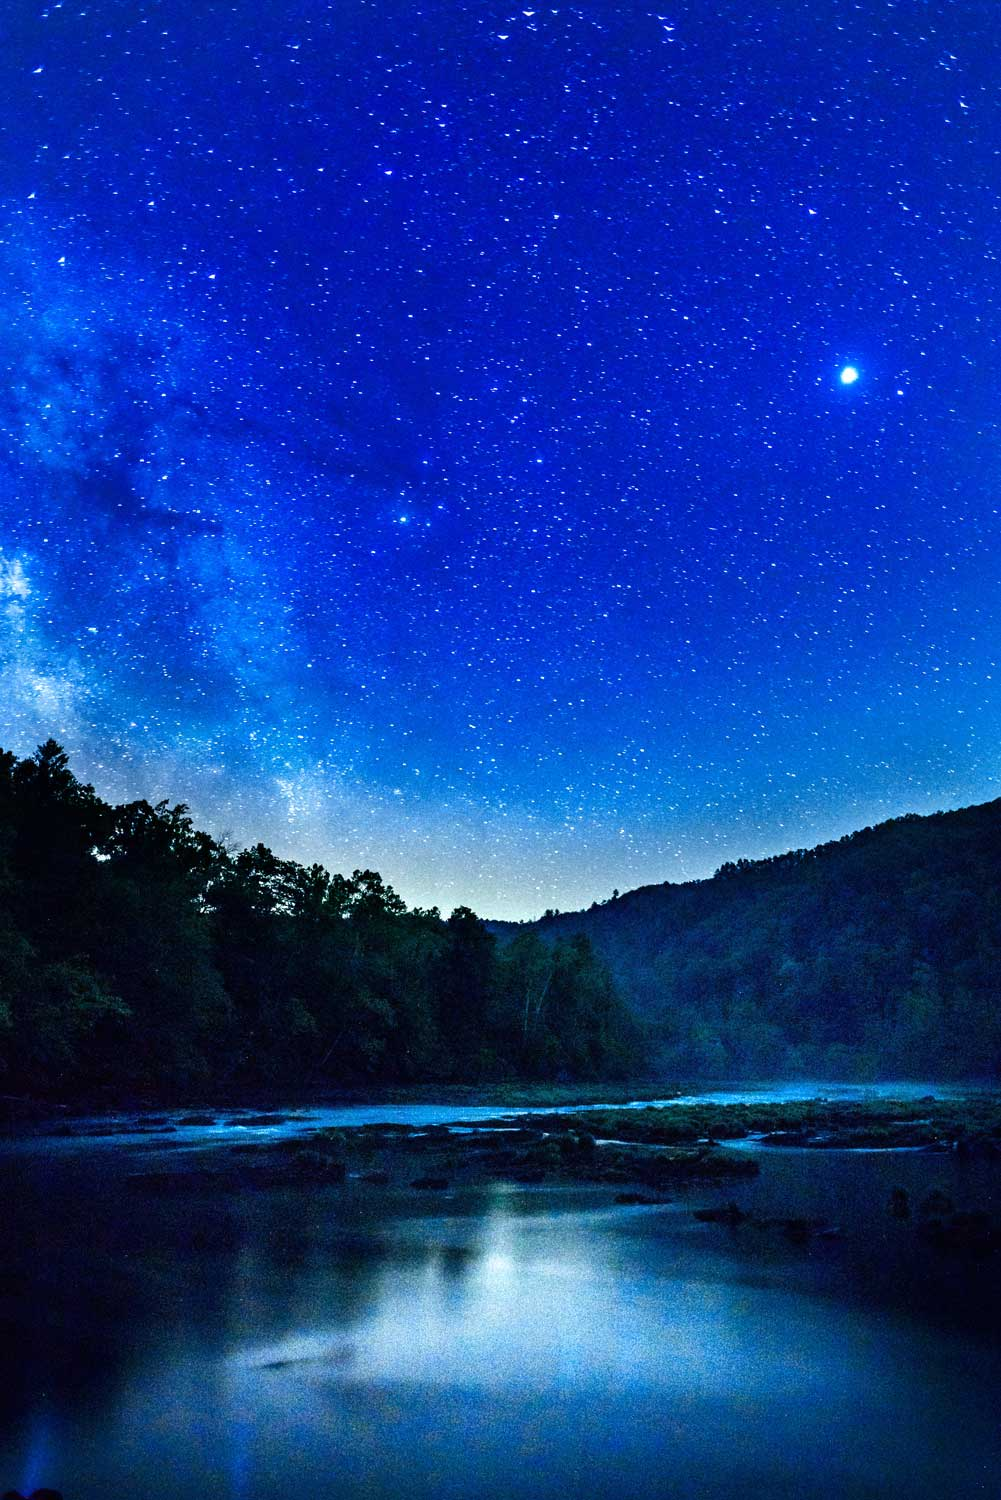 south east tennessee night with the milky way rising over the river